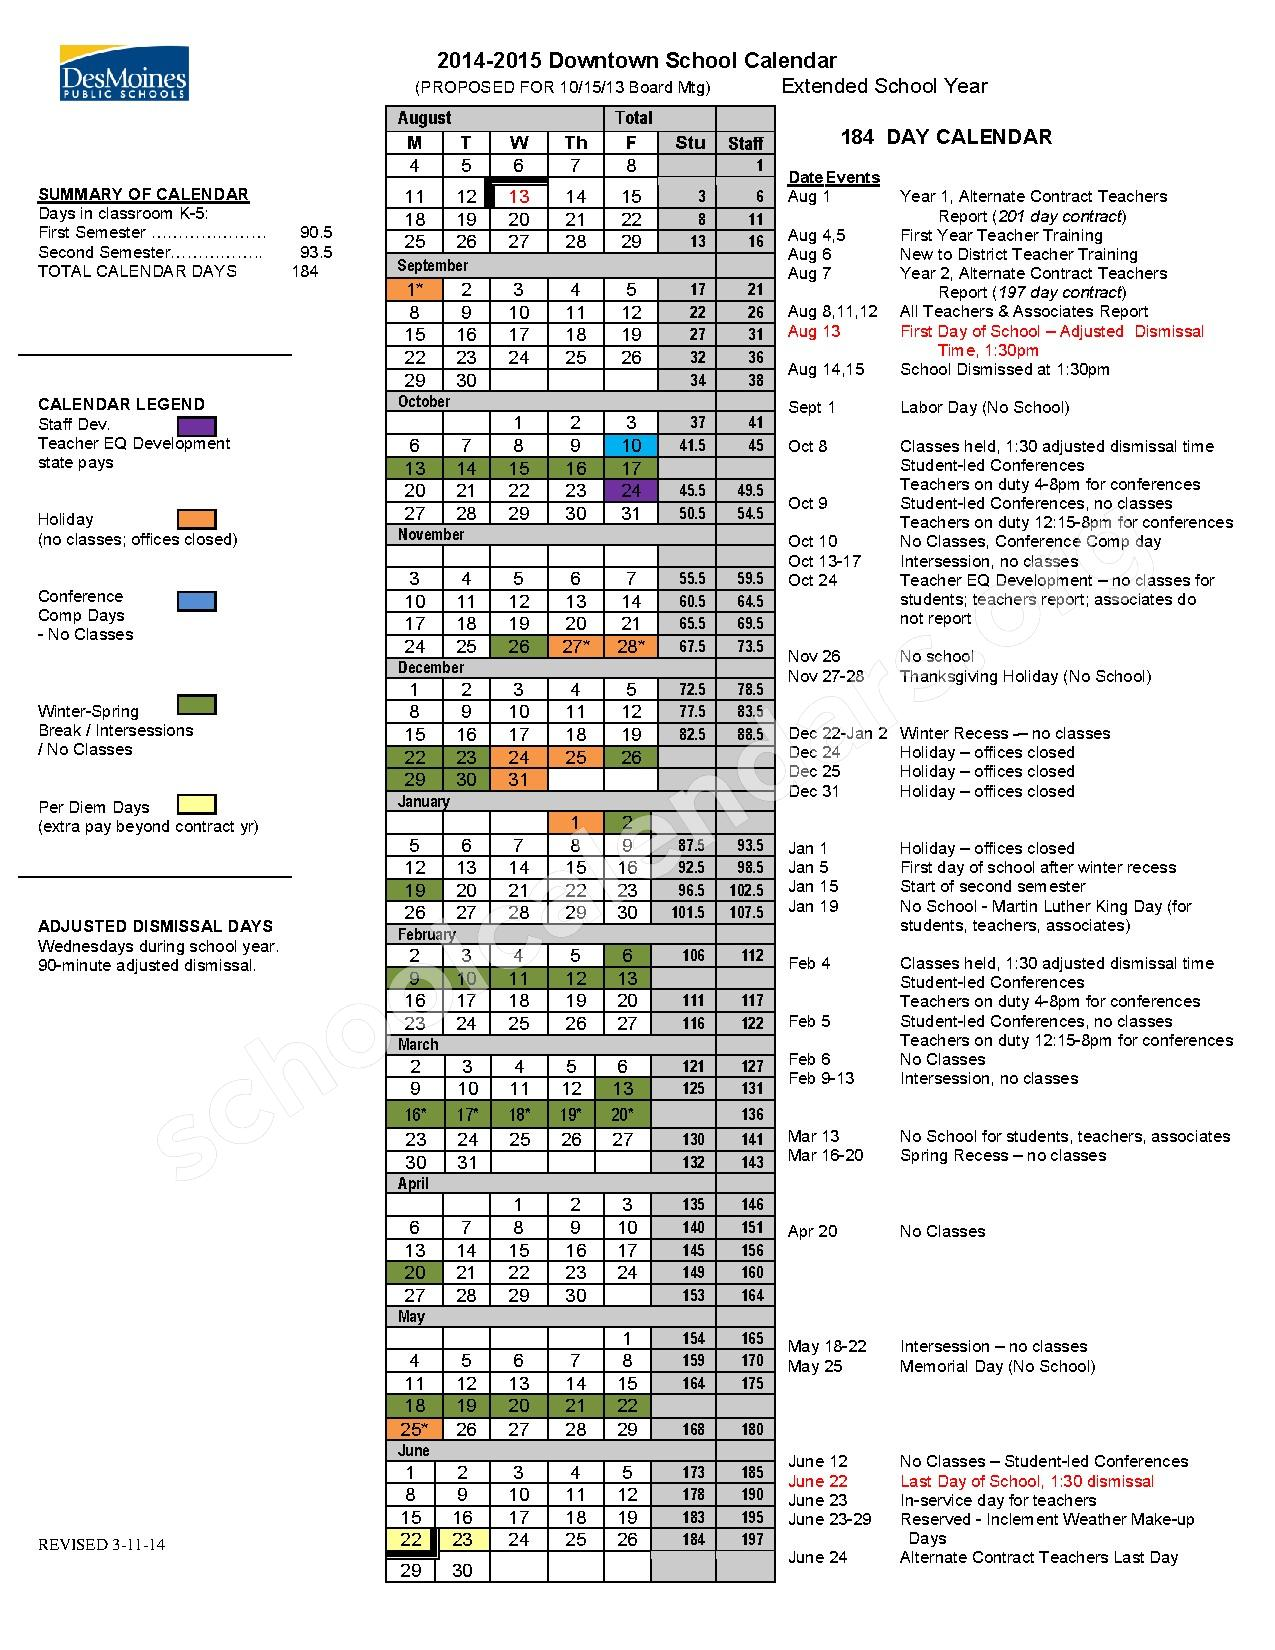 School Timetables 2015 2014 2015 Downtown School